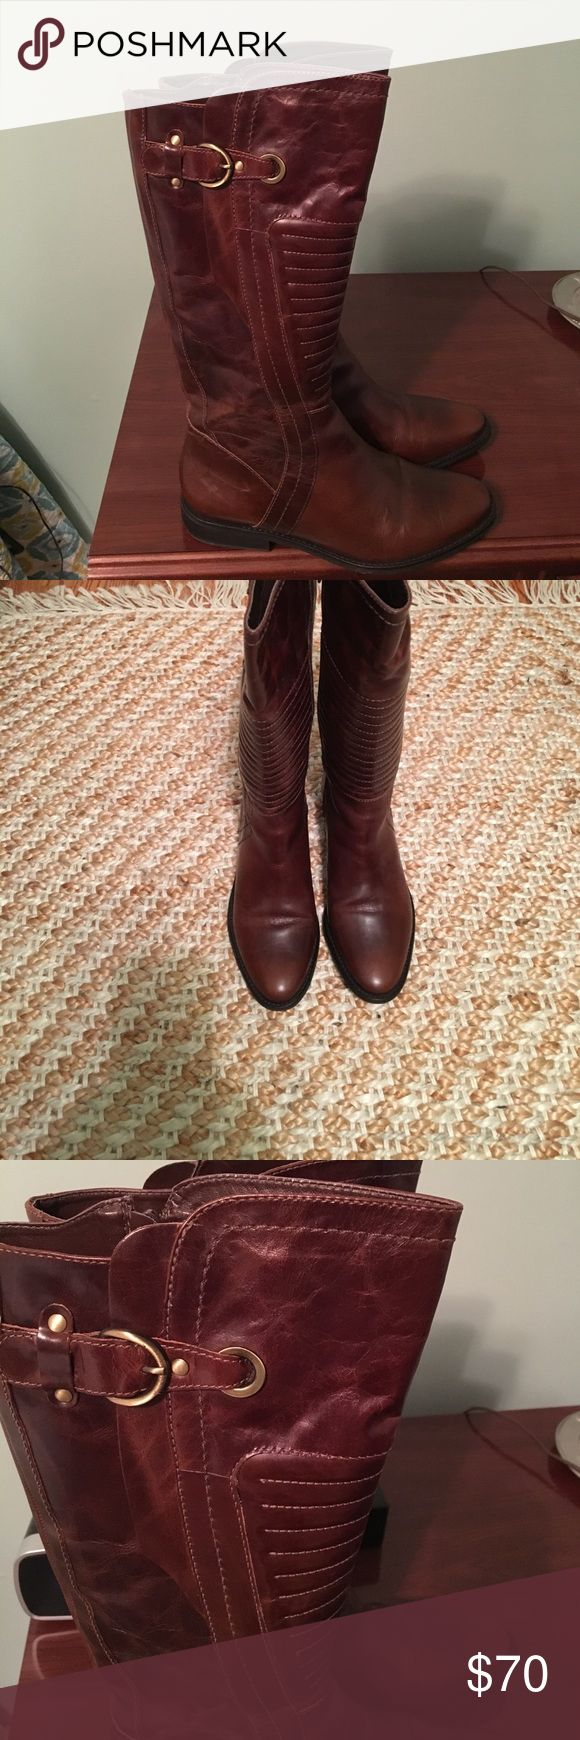 "Carlos Santana boots size 9. Carlos Santana '""Momentum "" boots. Size 9. Brown. Zip up on the inside. Super good condition. I only wore them 4-5 times because the size was too small. 1 inch heel. Carlos Santana Shoes Heeled Boots"